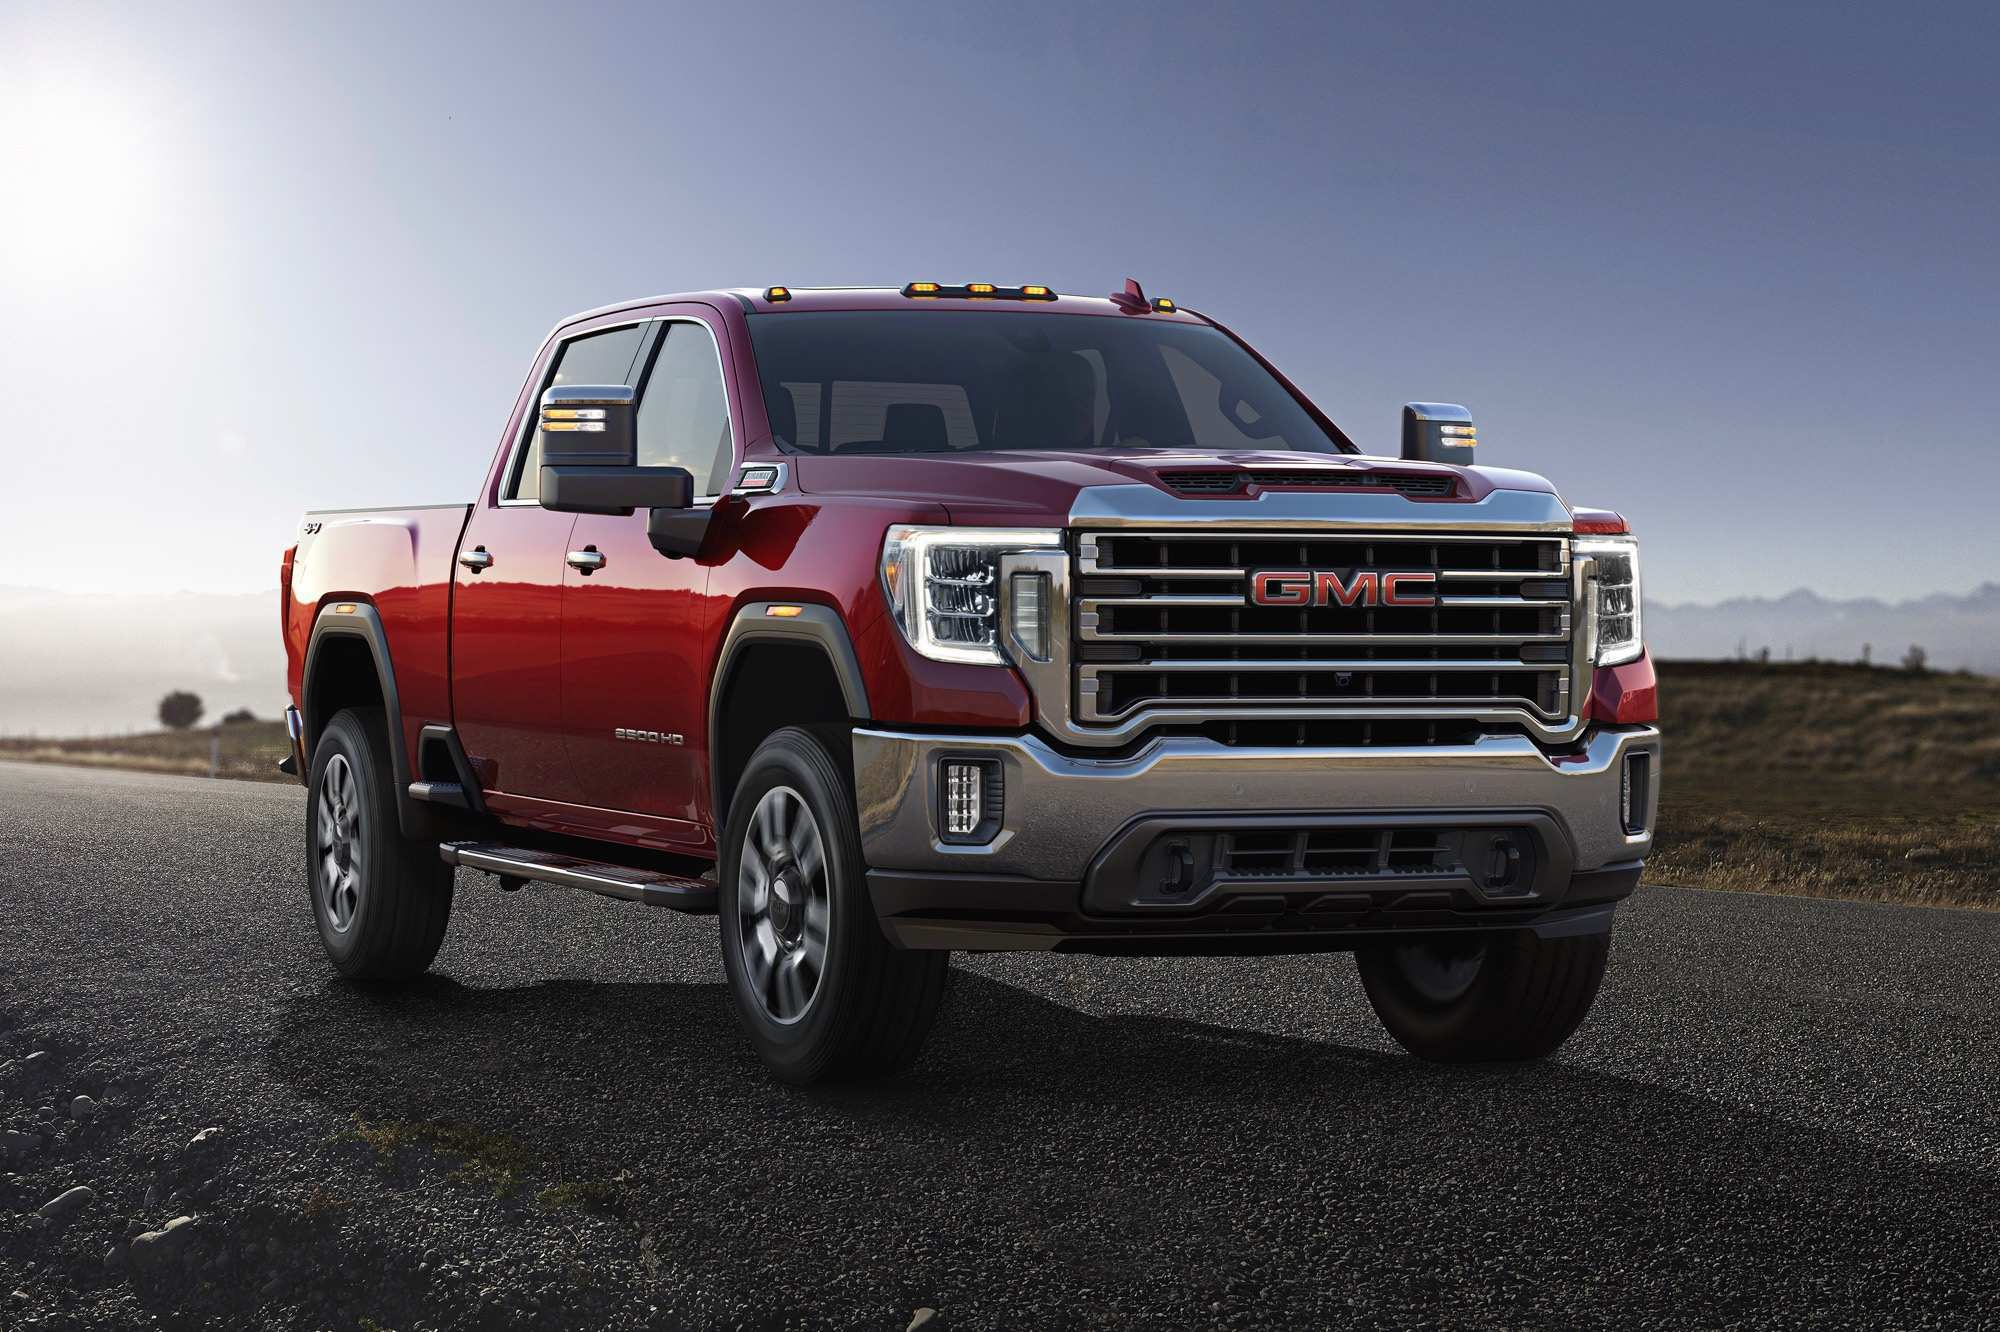 69 All New 2020 Gmc Truck History